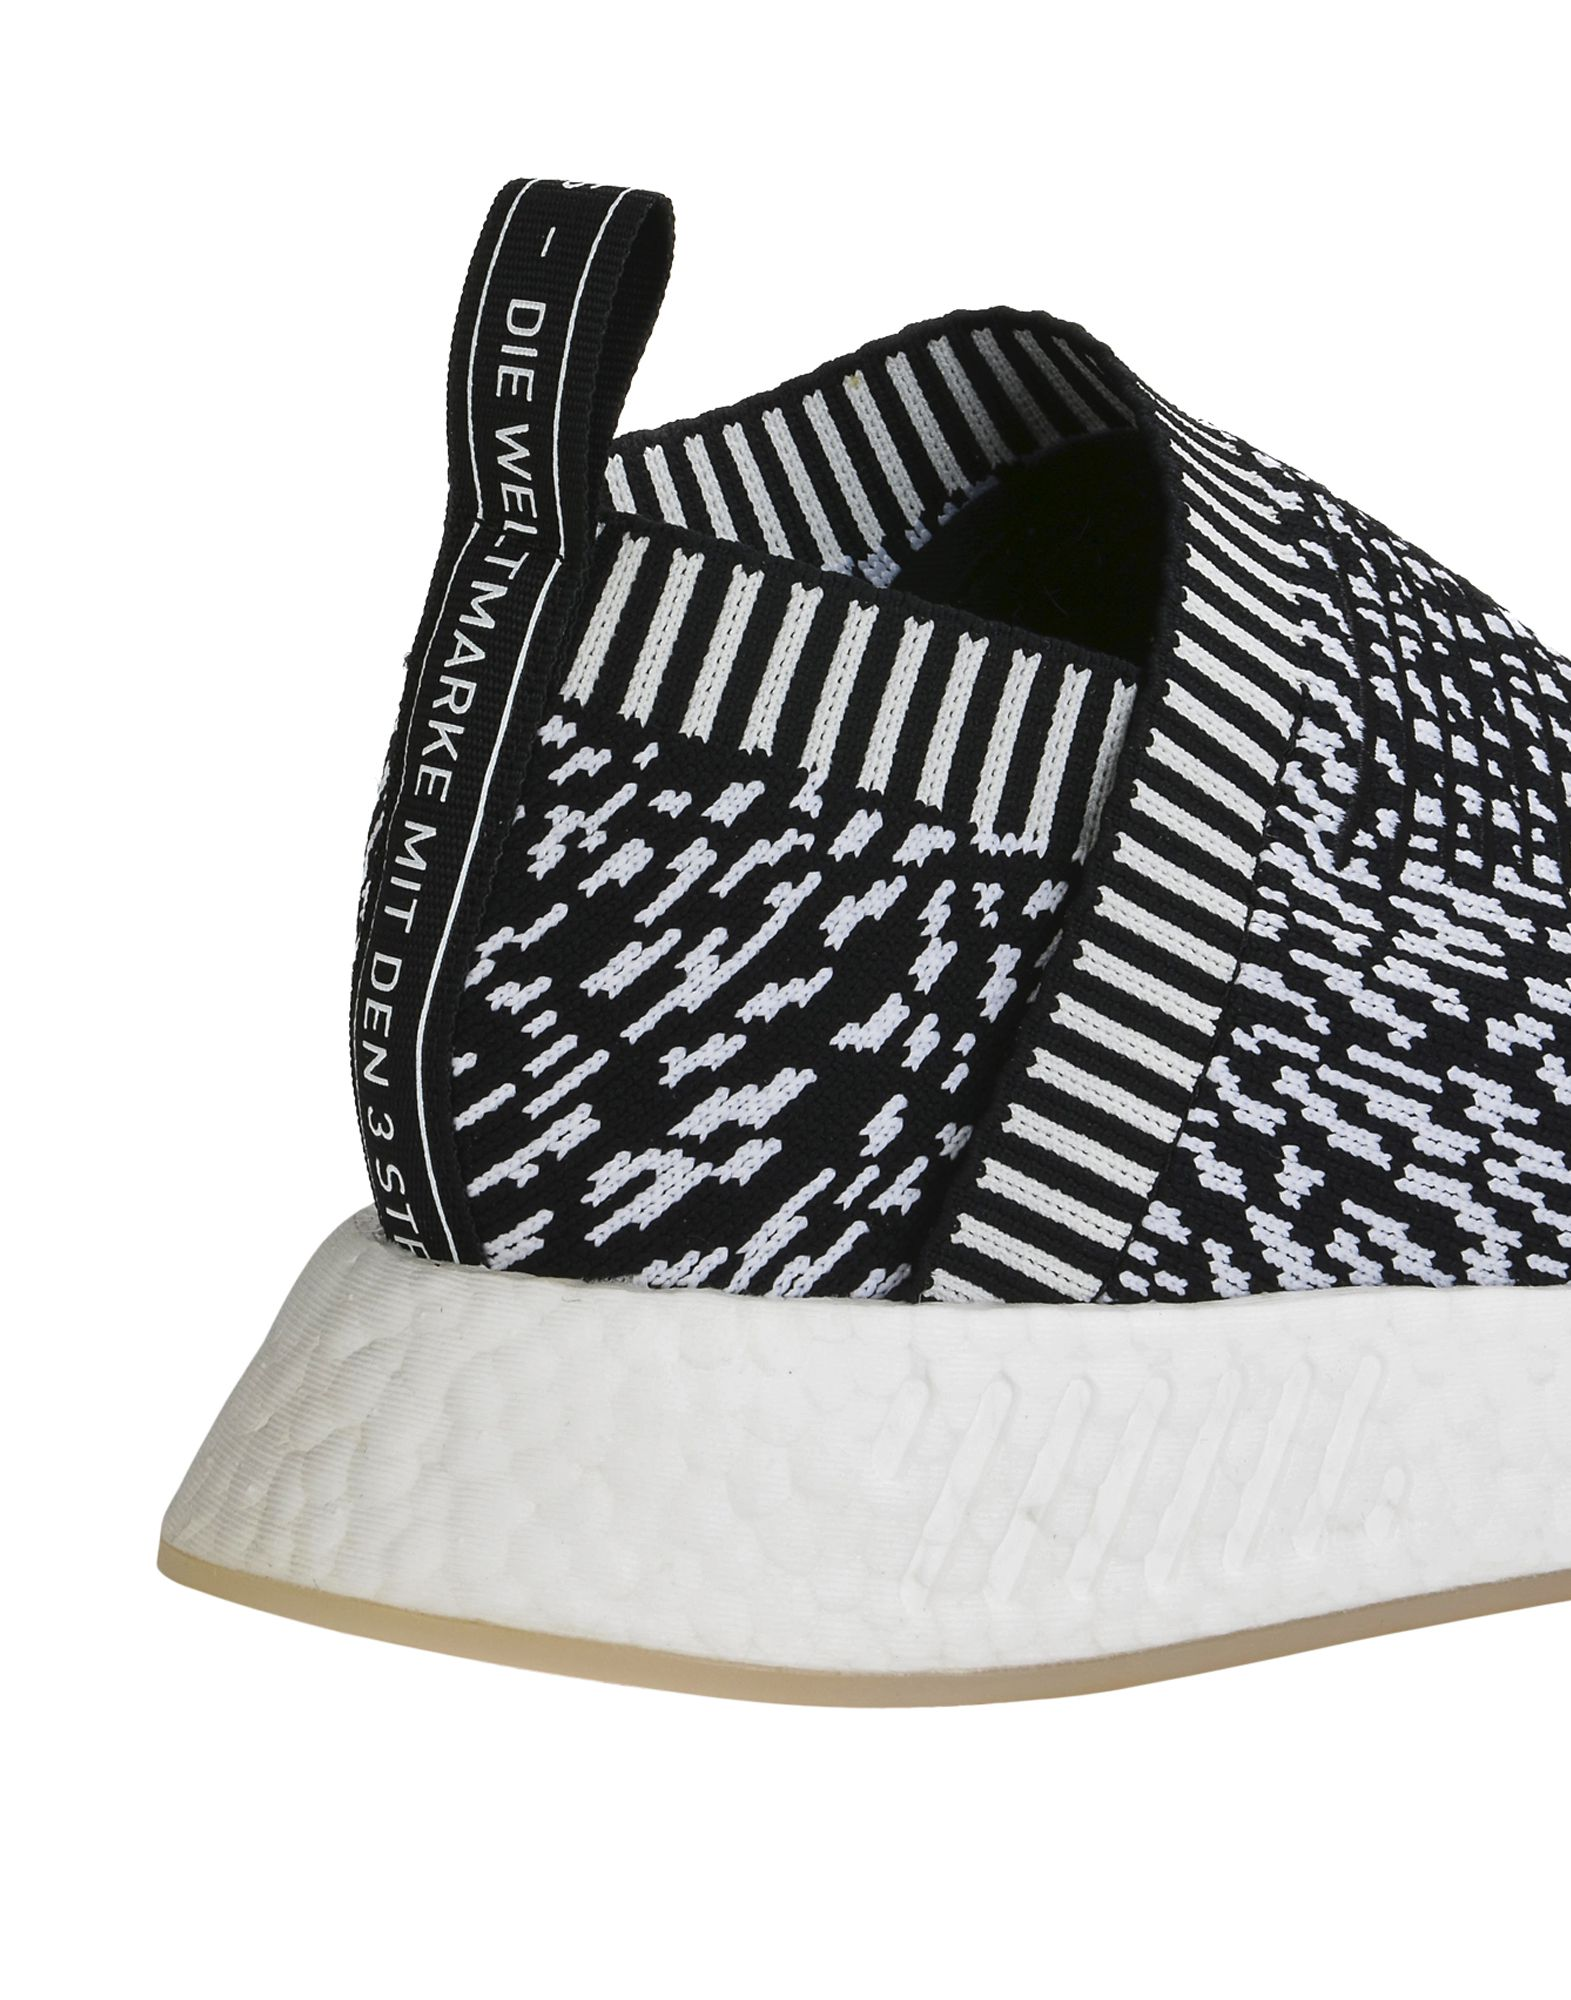 Sneakers Adidas Originals Nmd_Cs2 Pk - Homme - Sneakers Adidas Originals sur